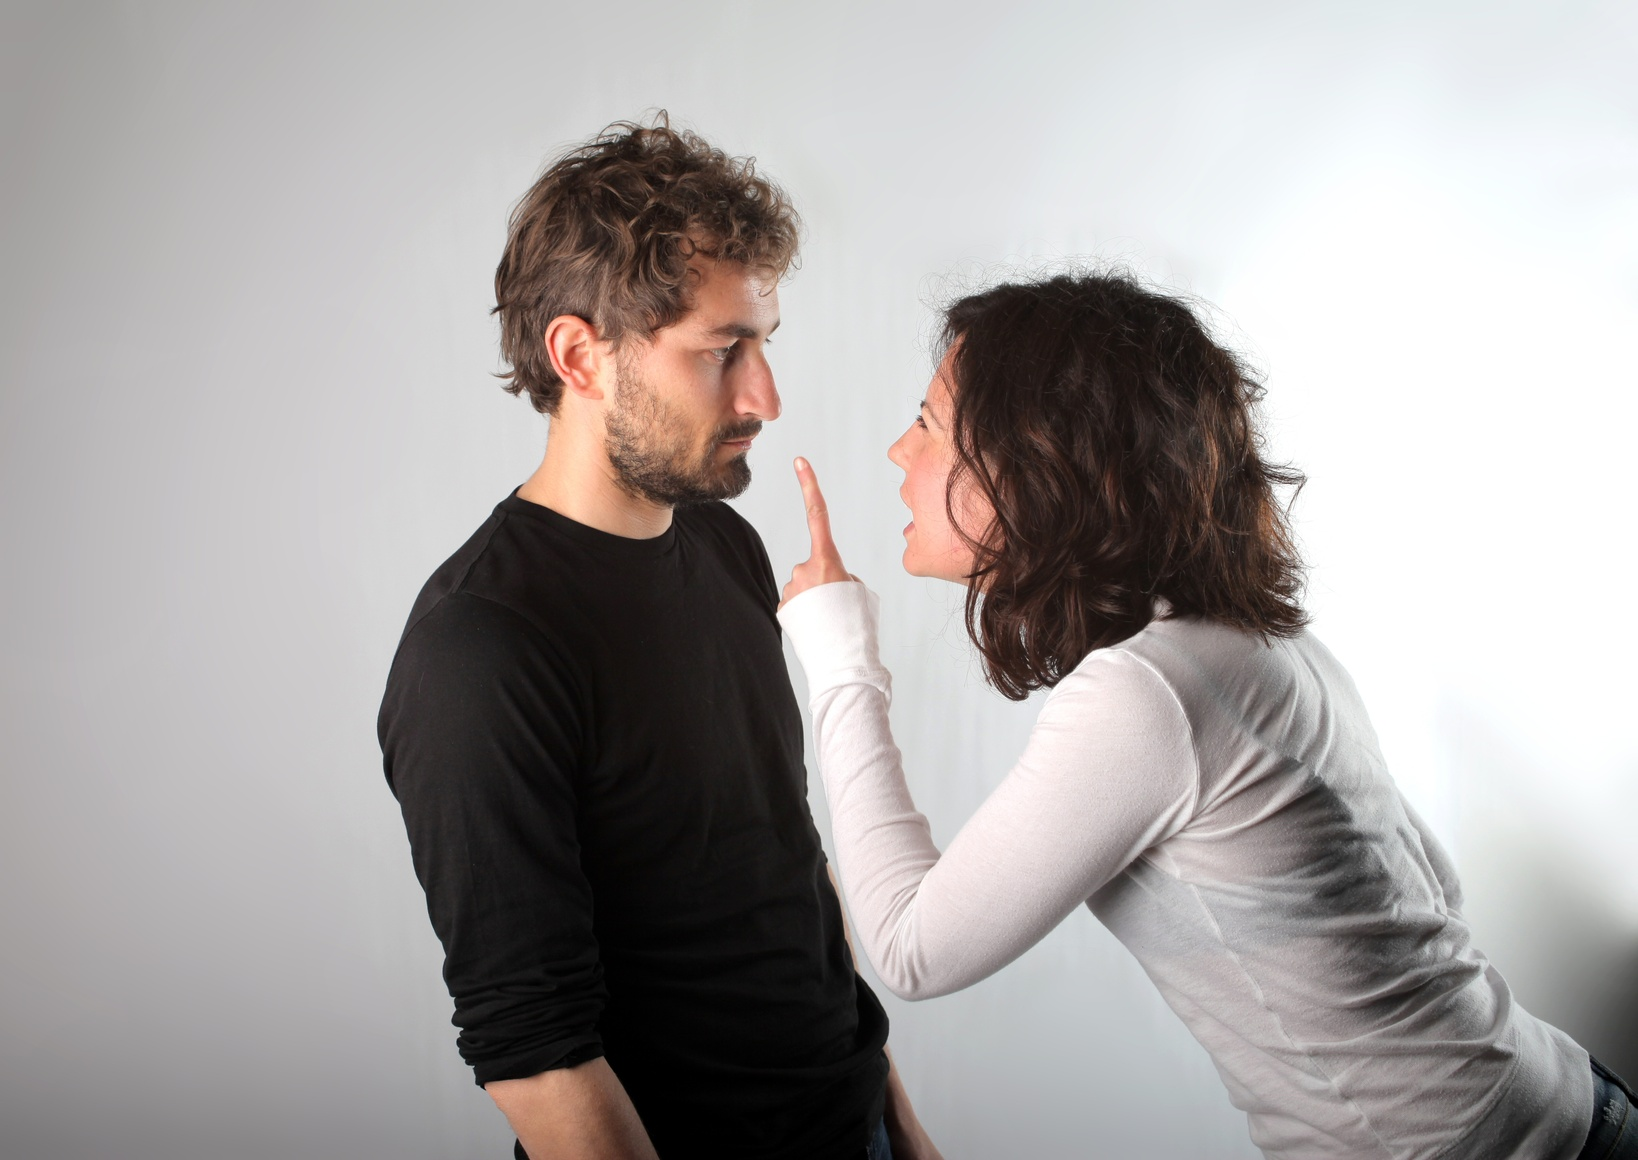 How To Deal With A Passive Aggressive Husband